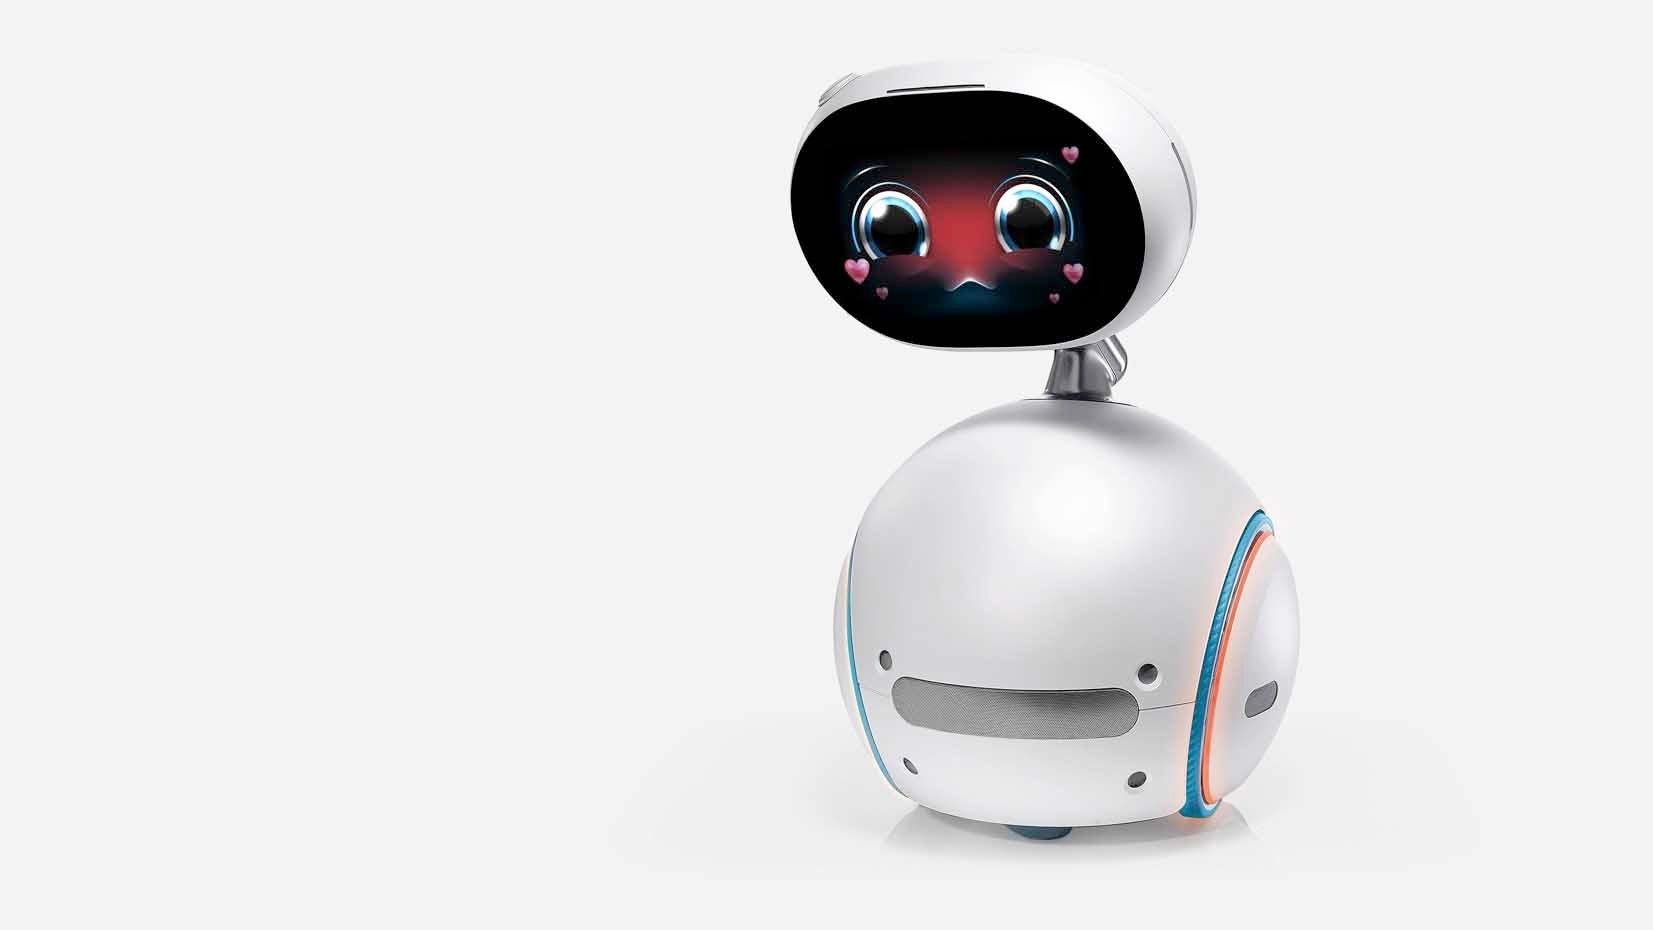 Asus Just Announced a MacBook Clone and Adorable Home Robot